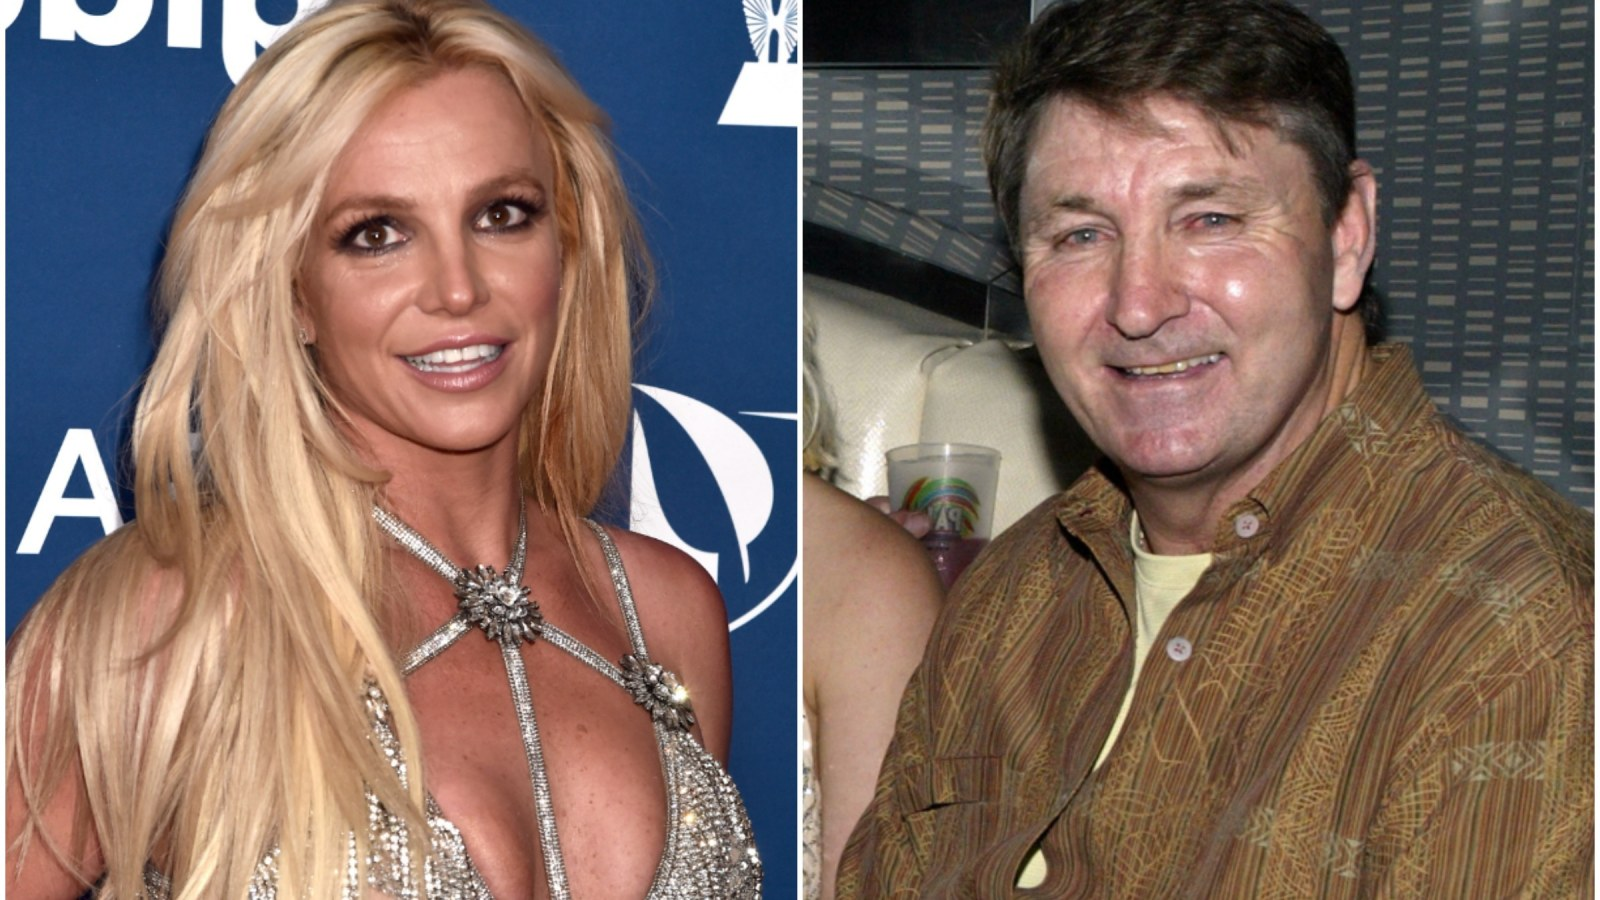 Britney Spears Finally Breaks Free From Her Dad Jamie Being Her Conservator